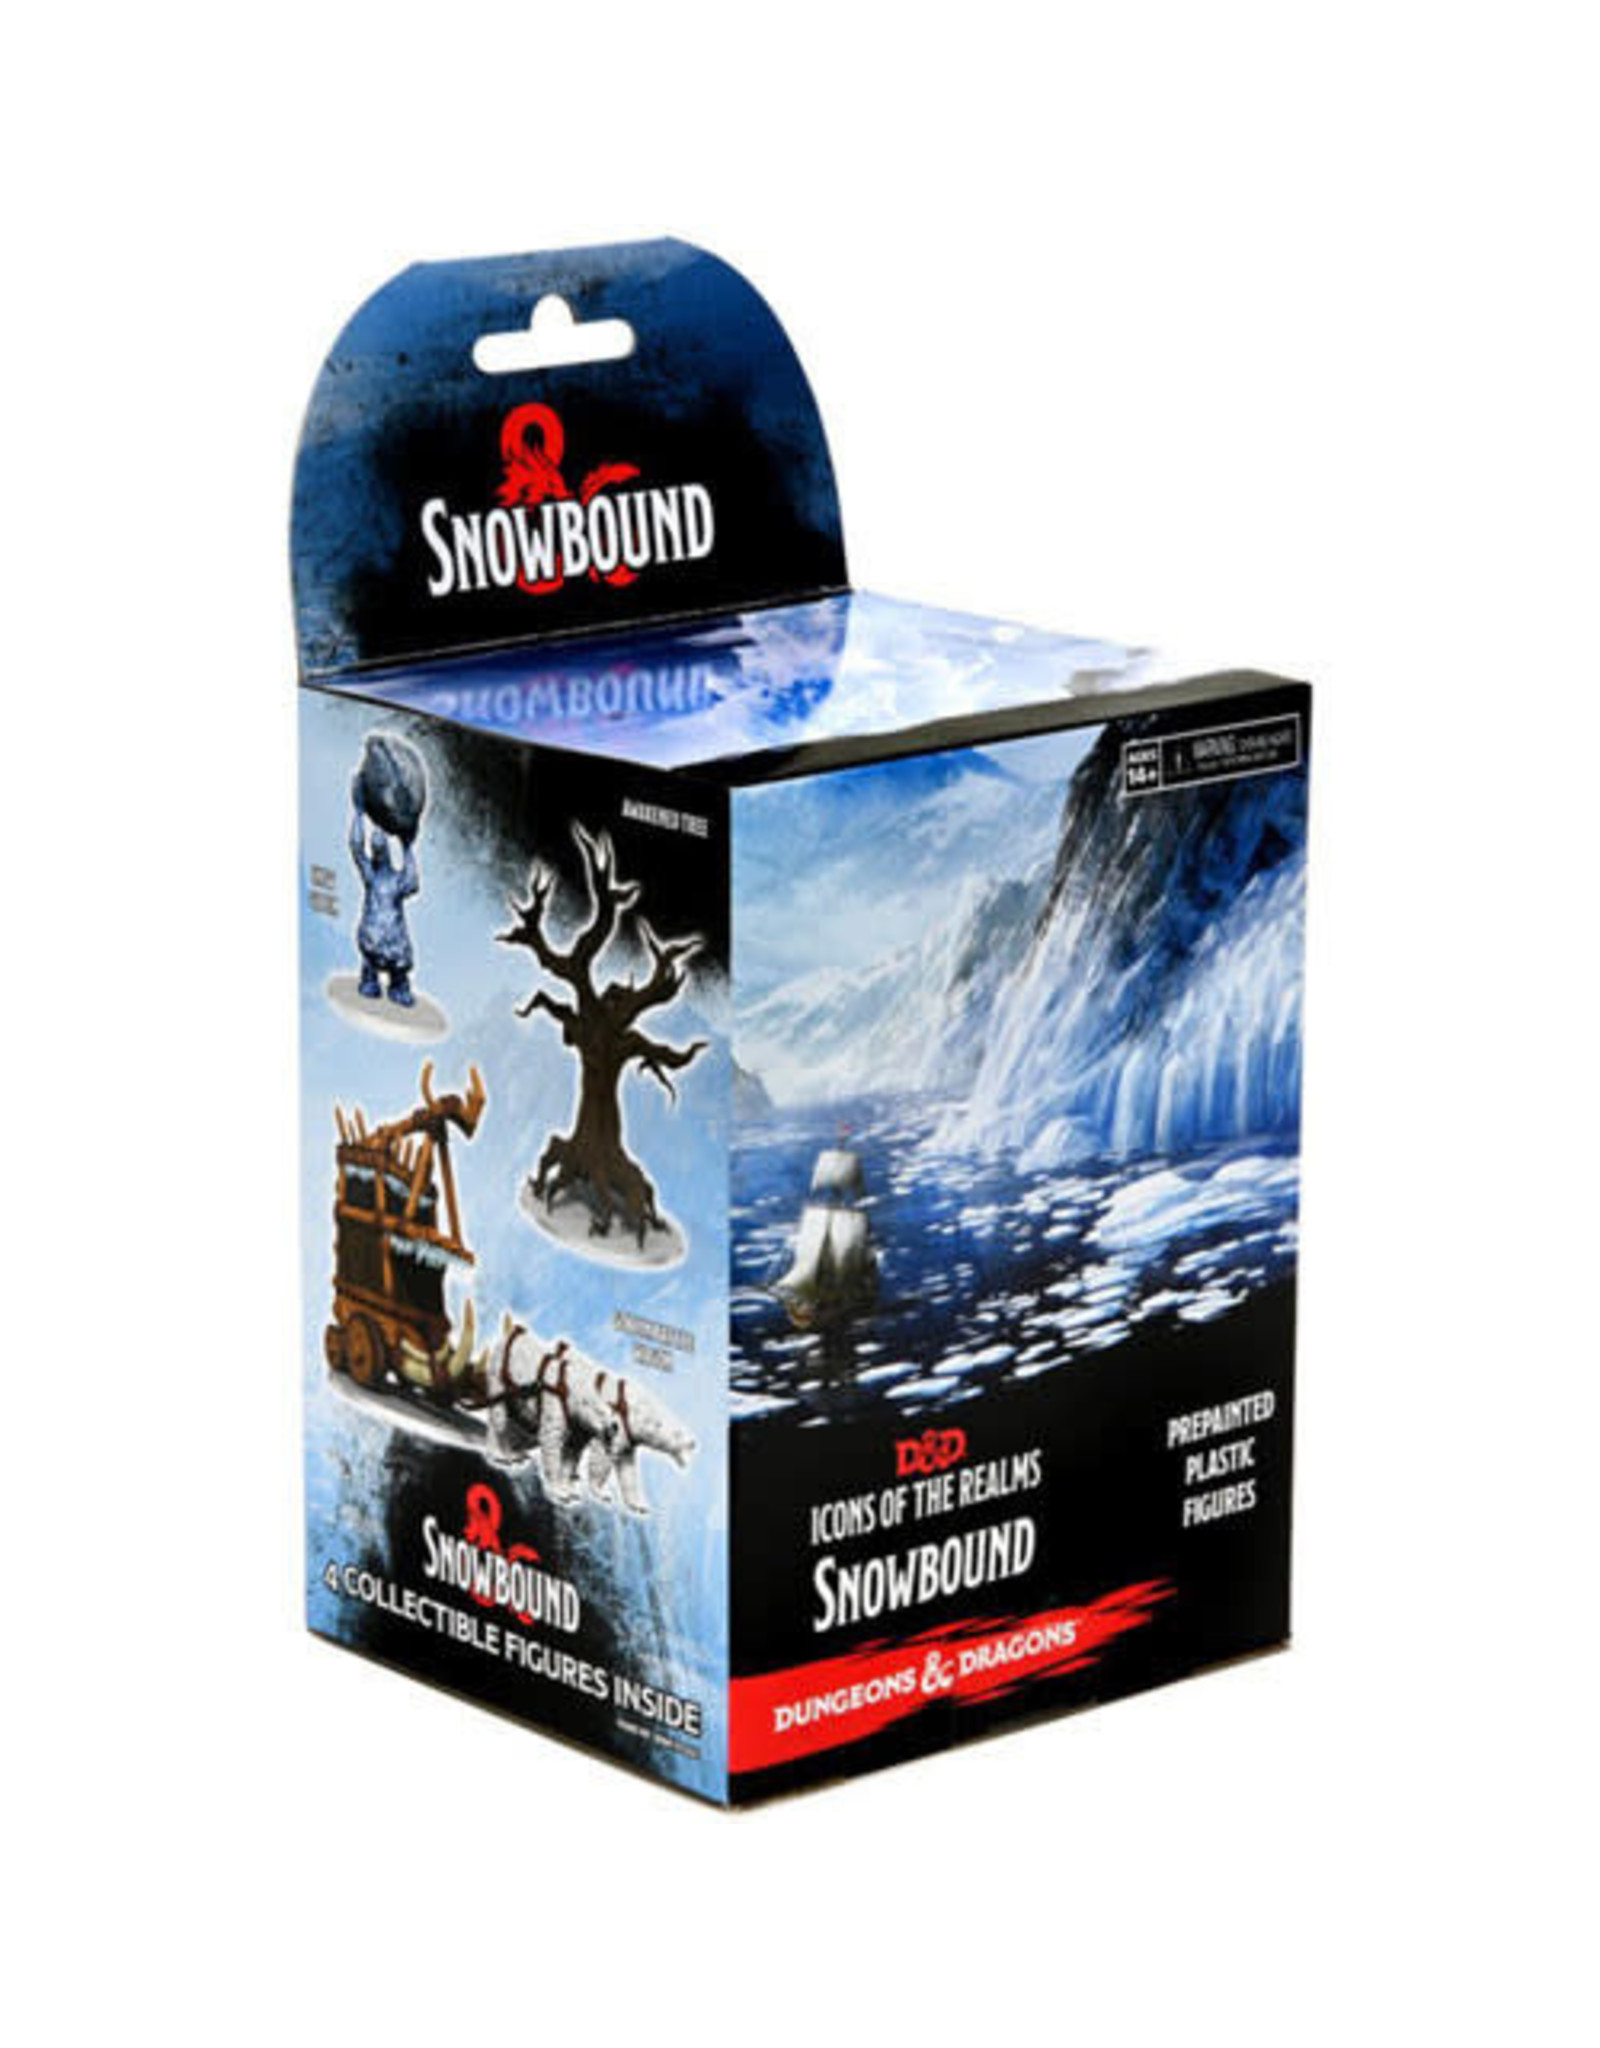 WizKids Dungeons & Dragons Fantasy Miniatures: Icons of the Realms Set 19 Snowbound Booster Brick (8) single